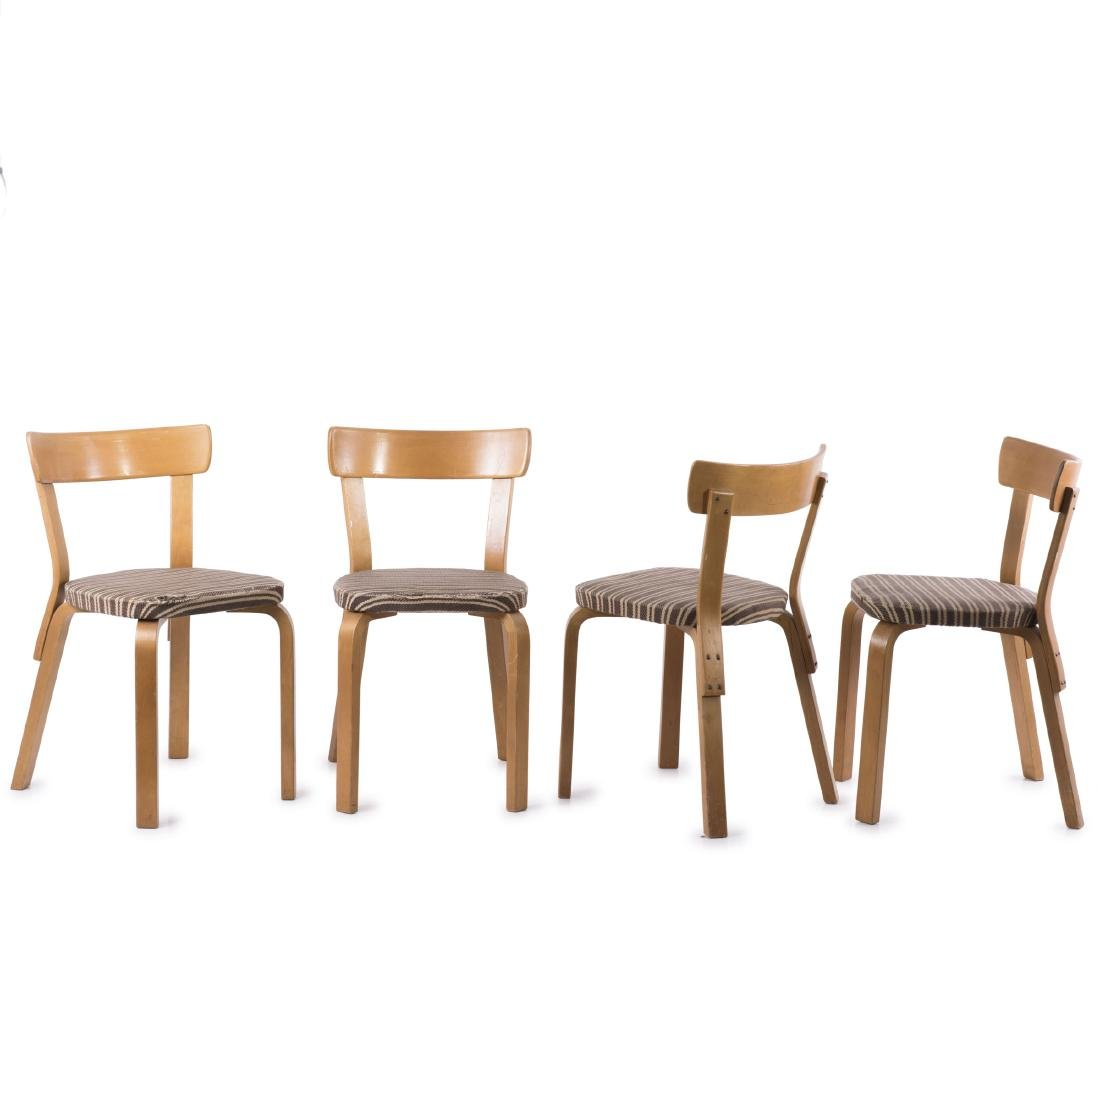 Four '69' chairs, c1933